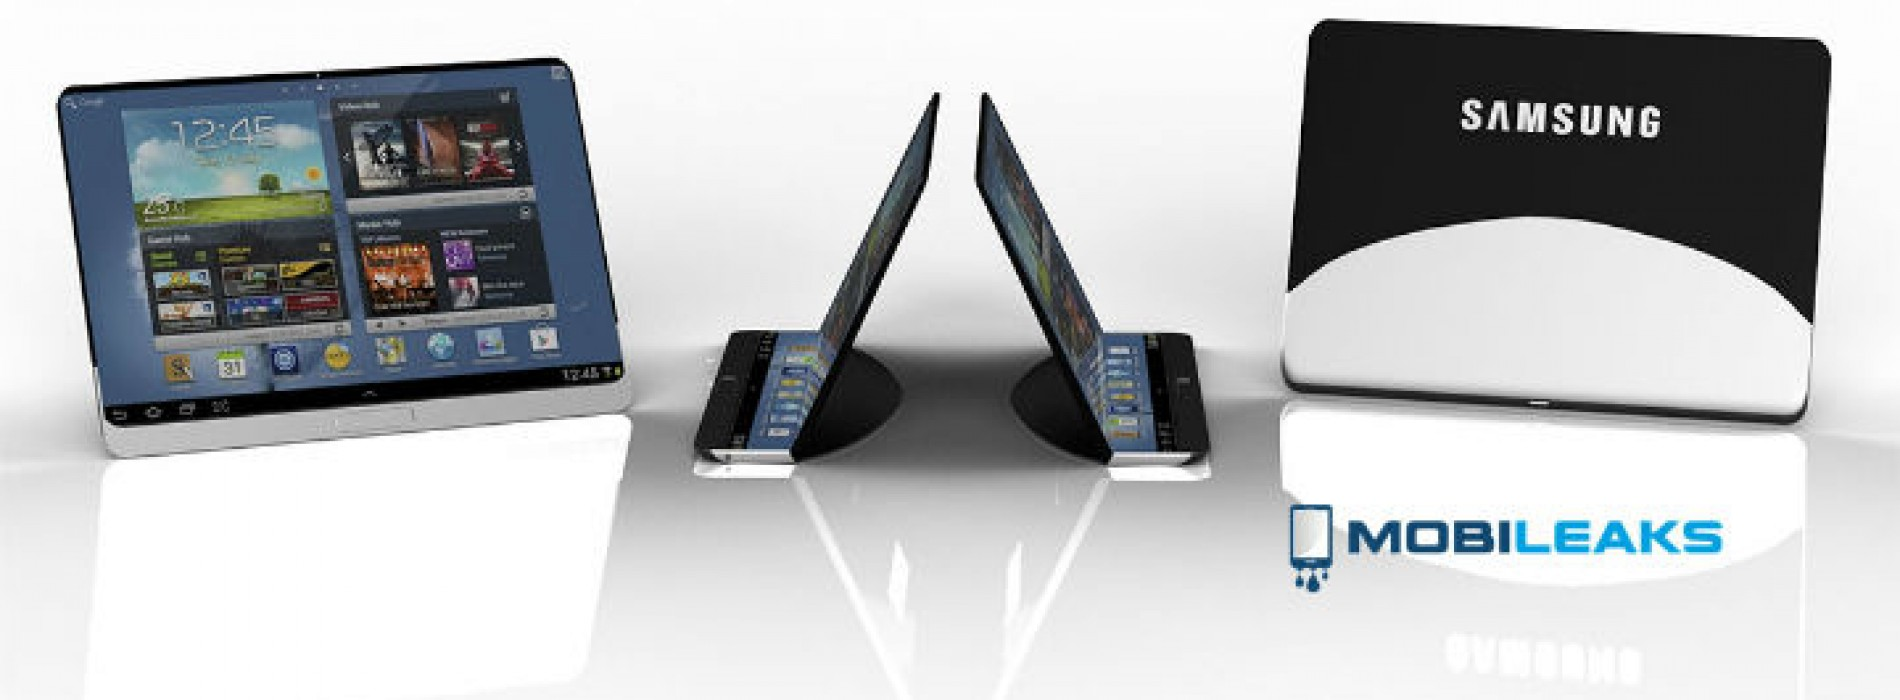 Rumored flexible Samsung tablet specs and images leaked